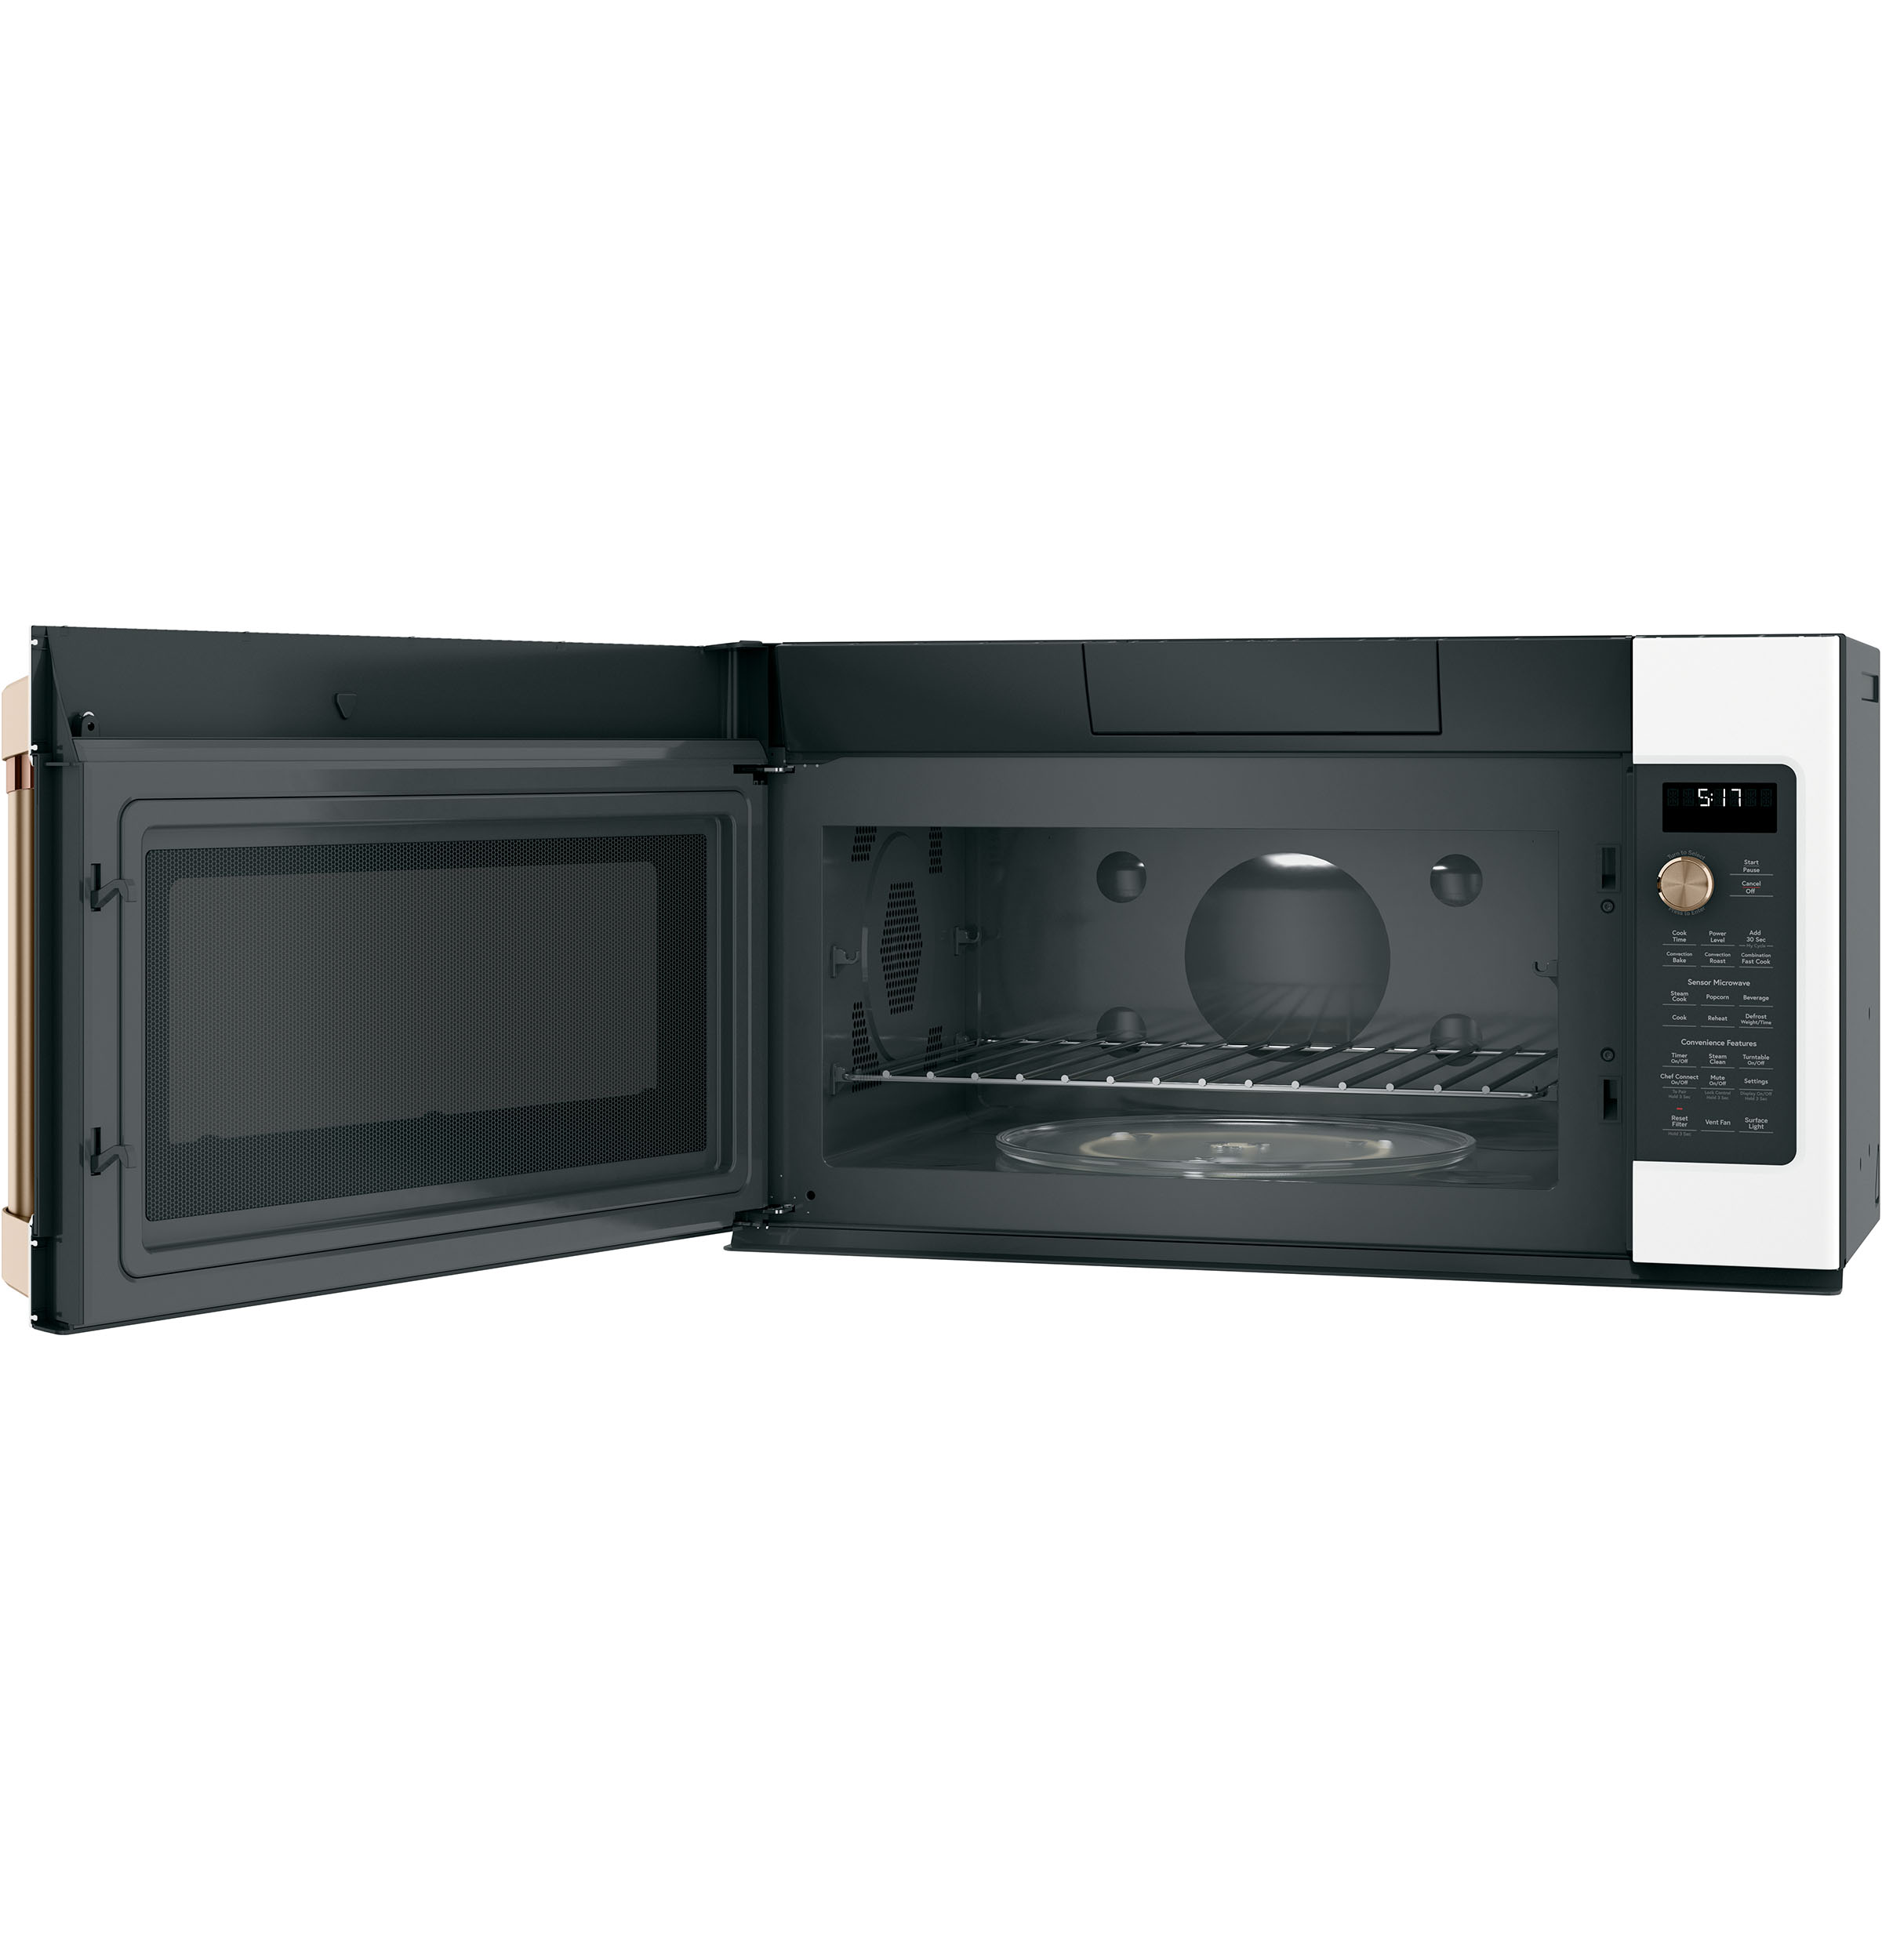 Café™ 1.7 Cu. Ft. Convection Over-the-Range Microwave Oven